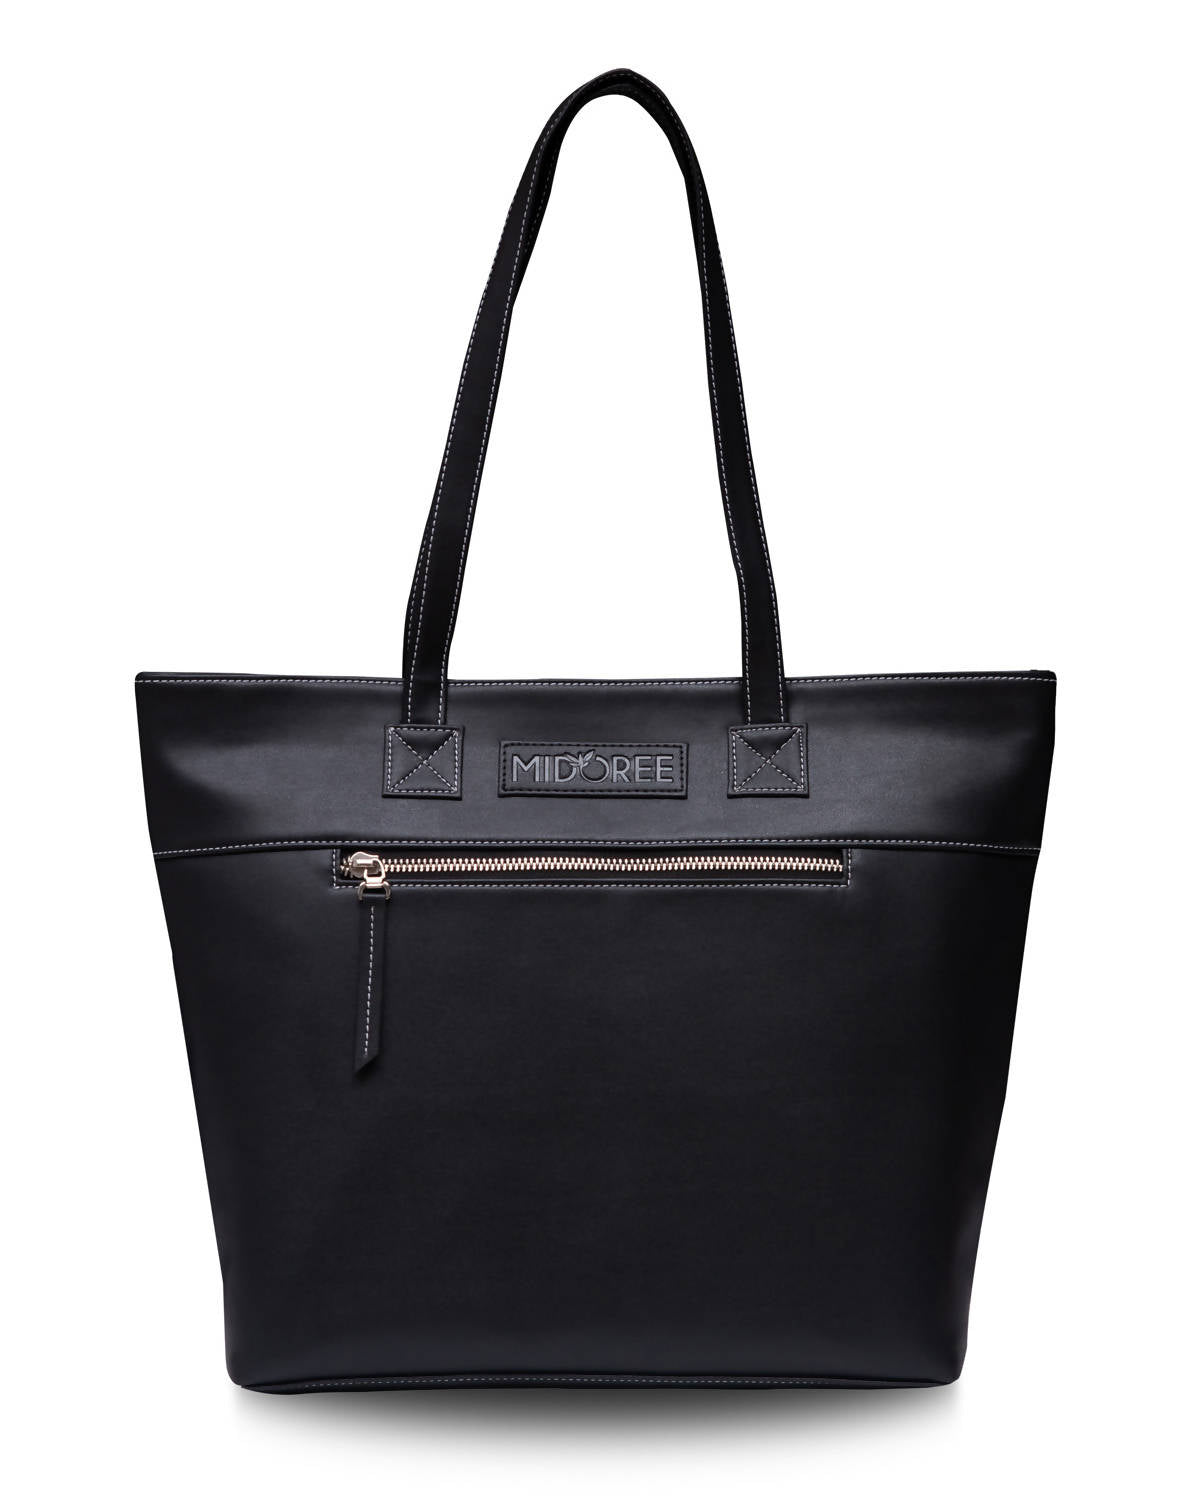 Dark Knight Tote,Midoree, Curated Designer at Freesigners.com